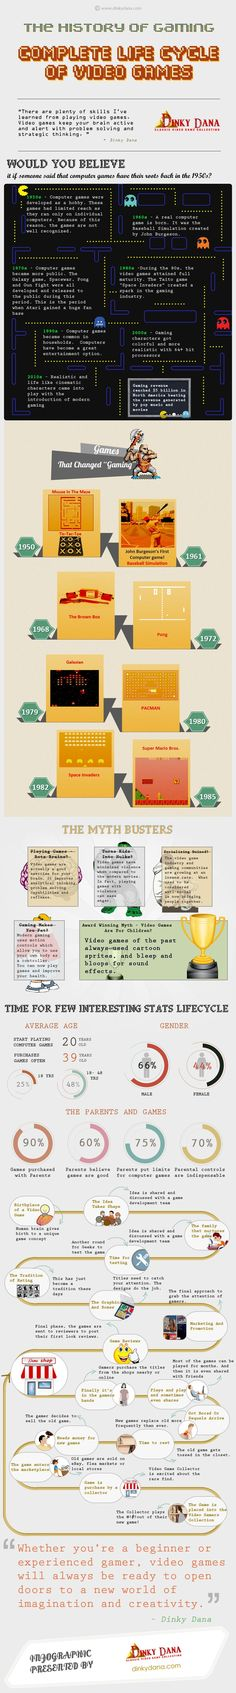 Infographic Ideas infographic video games : Games!!! on Pinterest | Video Games, Computers and Infographic